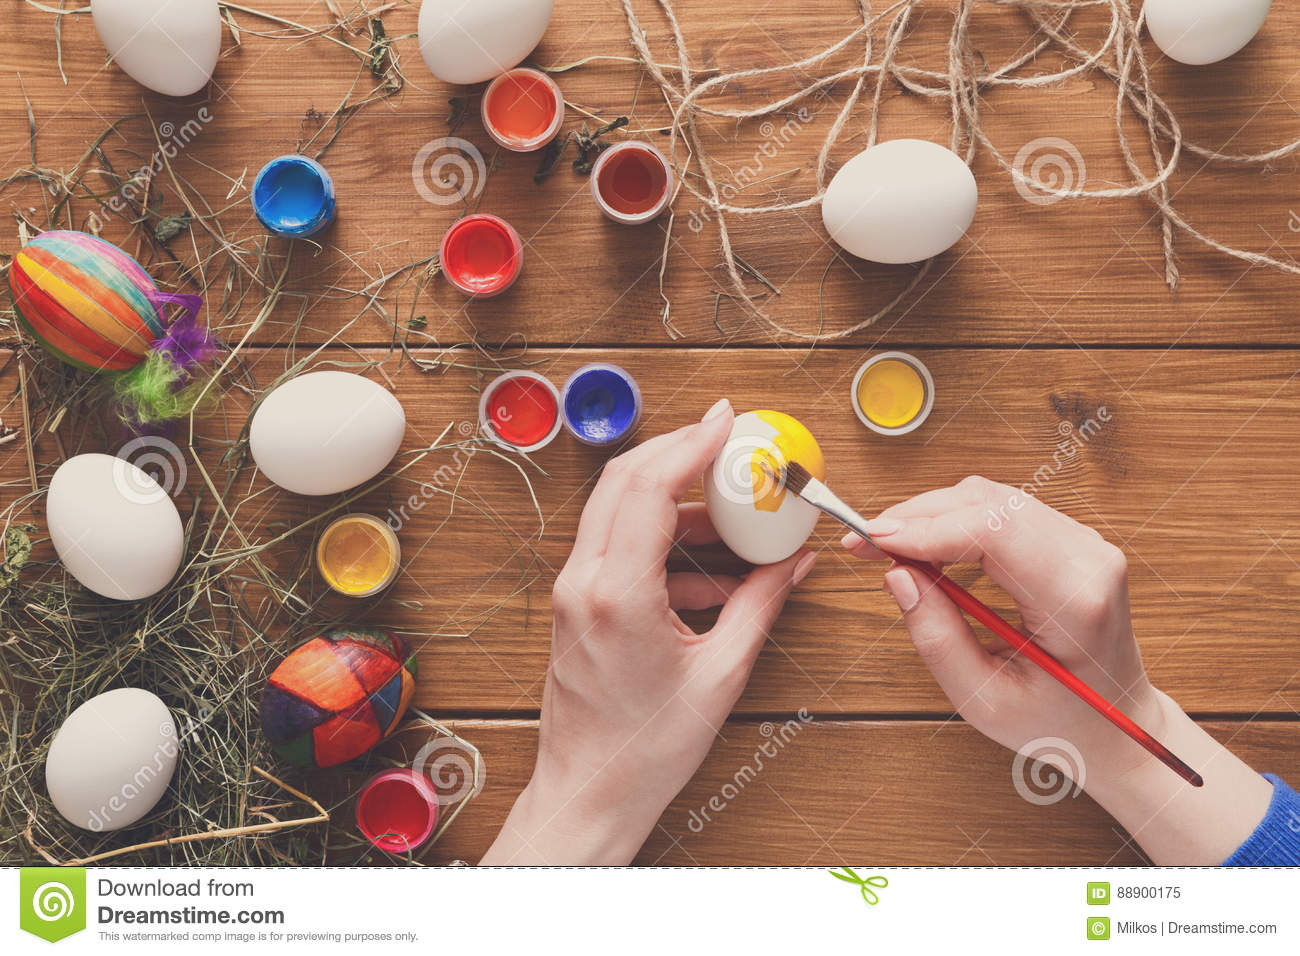 Preparing for the holiday: how to make Easter